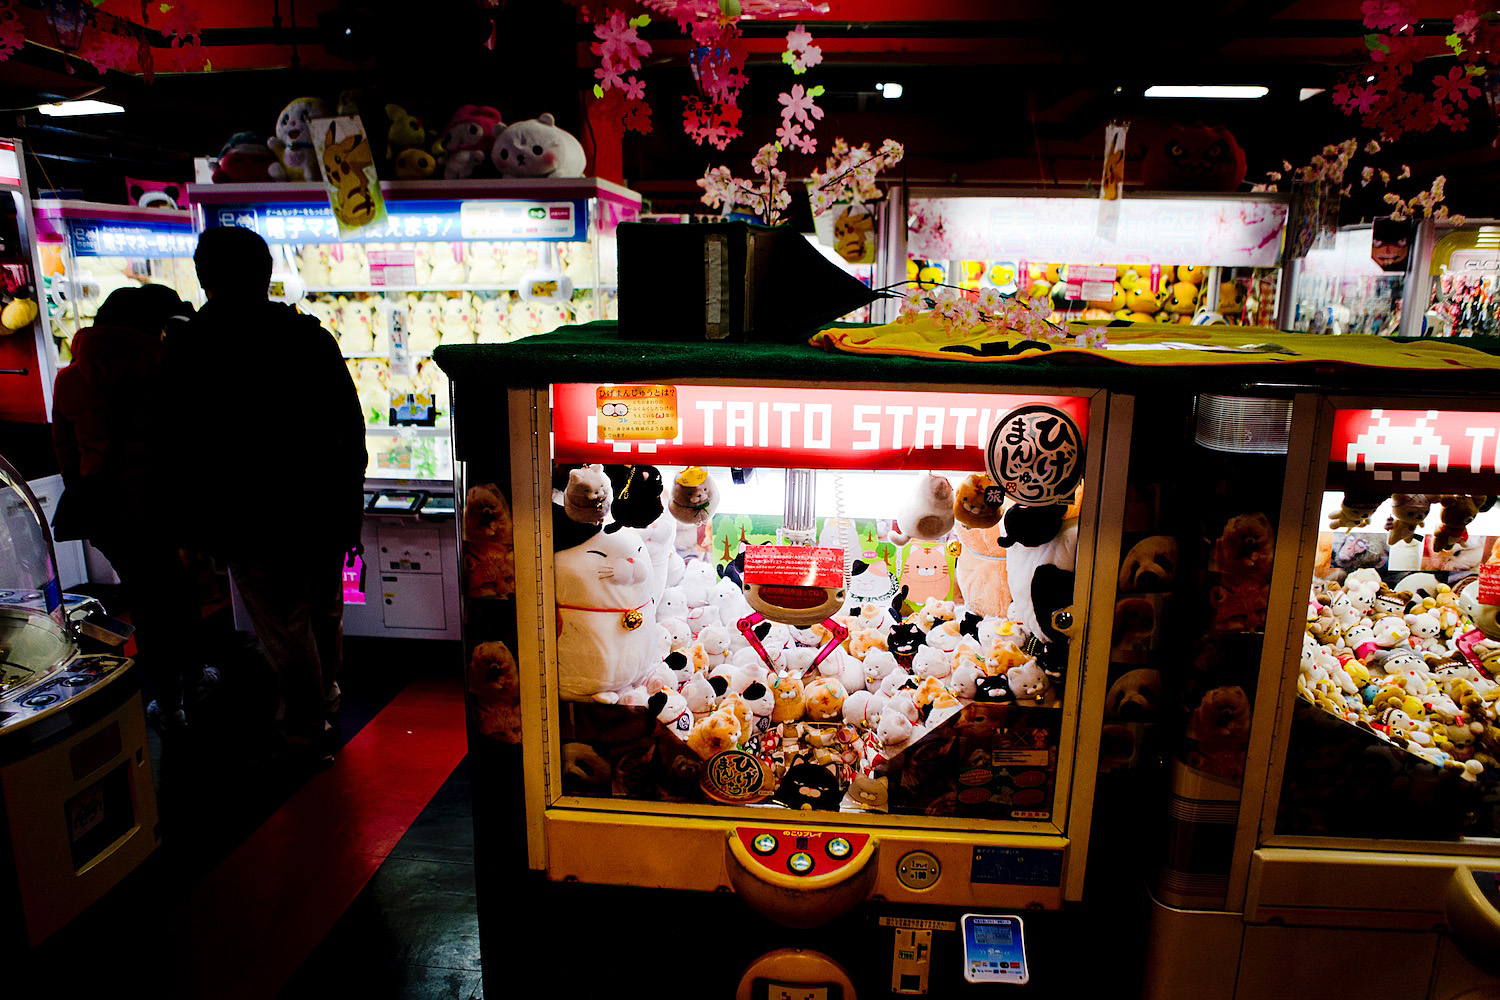 The Golden Bun's Guide to TOKIO | Akihabara, Taito Stations 48 hours in Tokio www.thegoldenbun.com